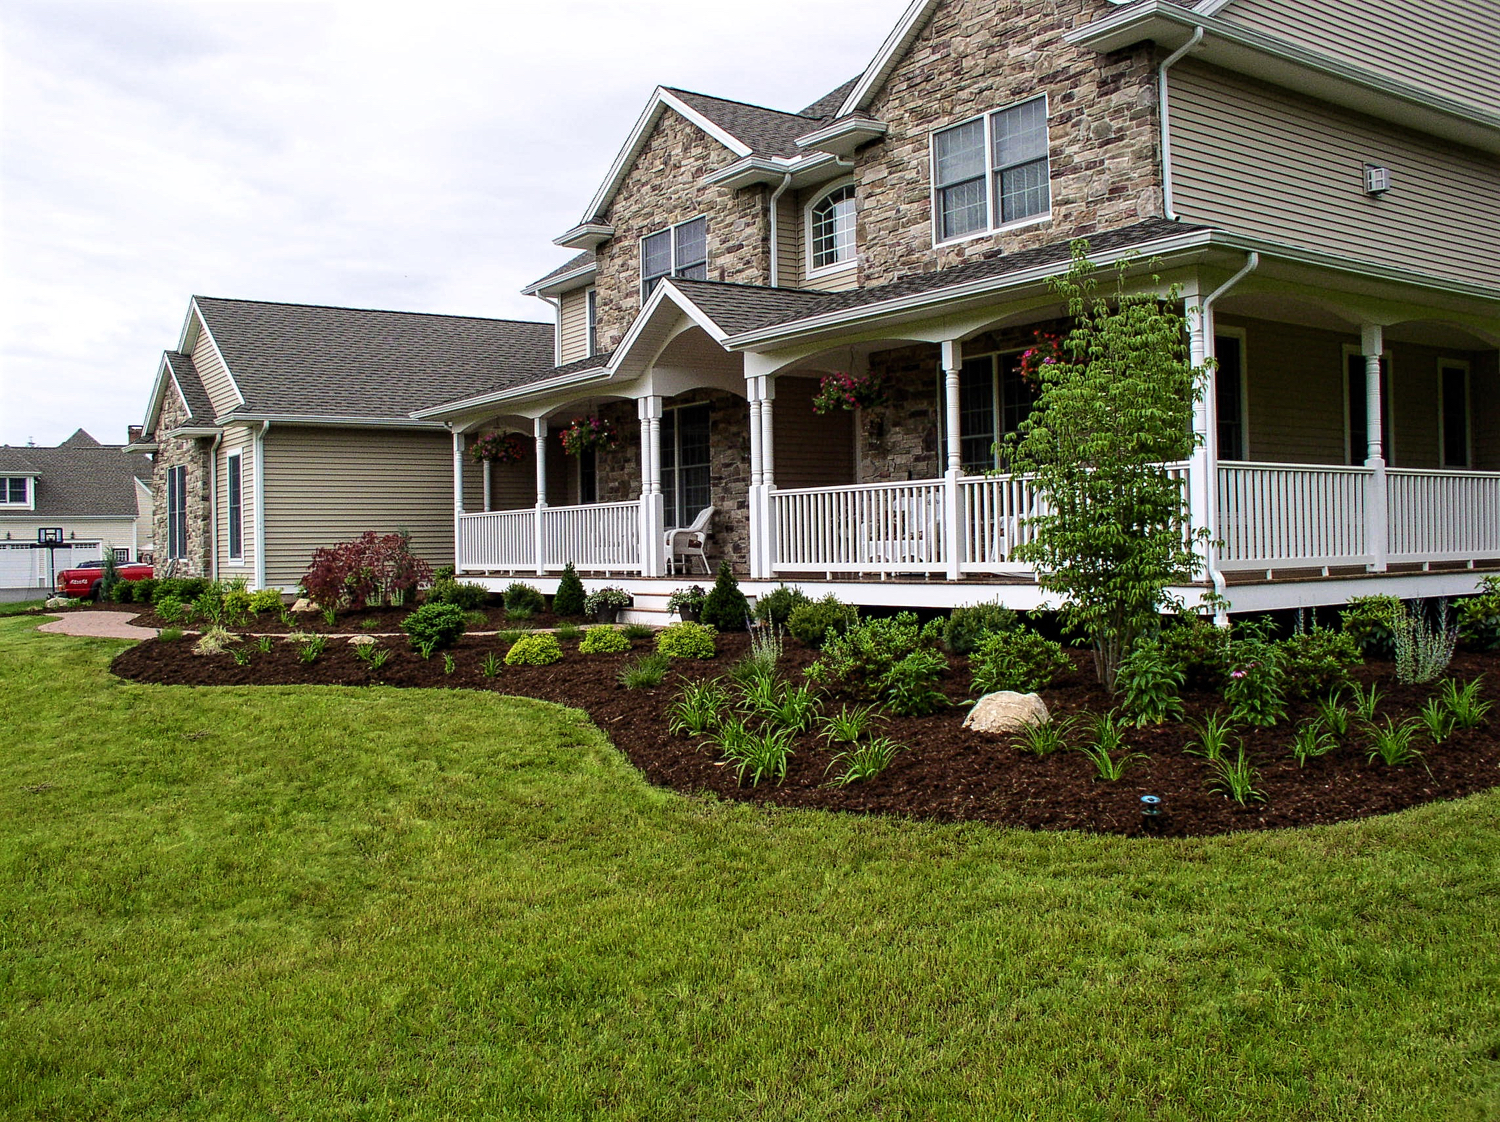 Landscaping Ideas Pictures Ct Landscaping Organic Lawn Care